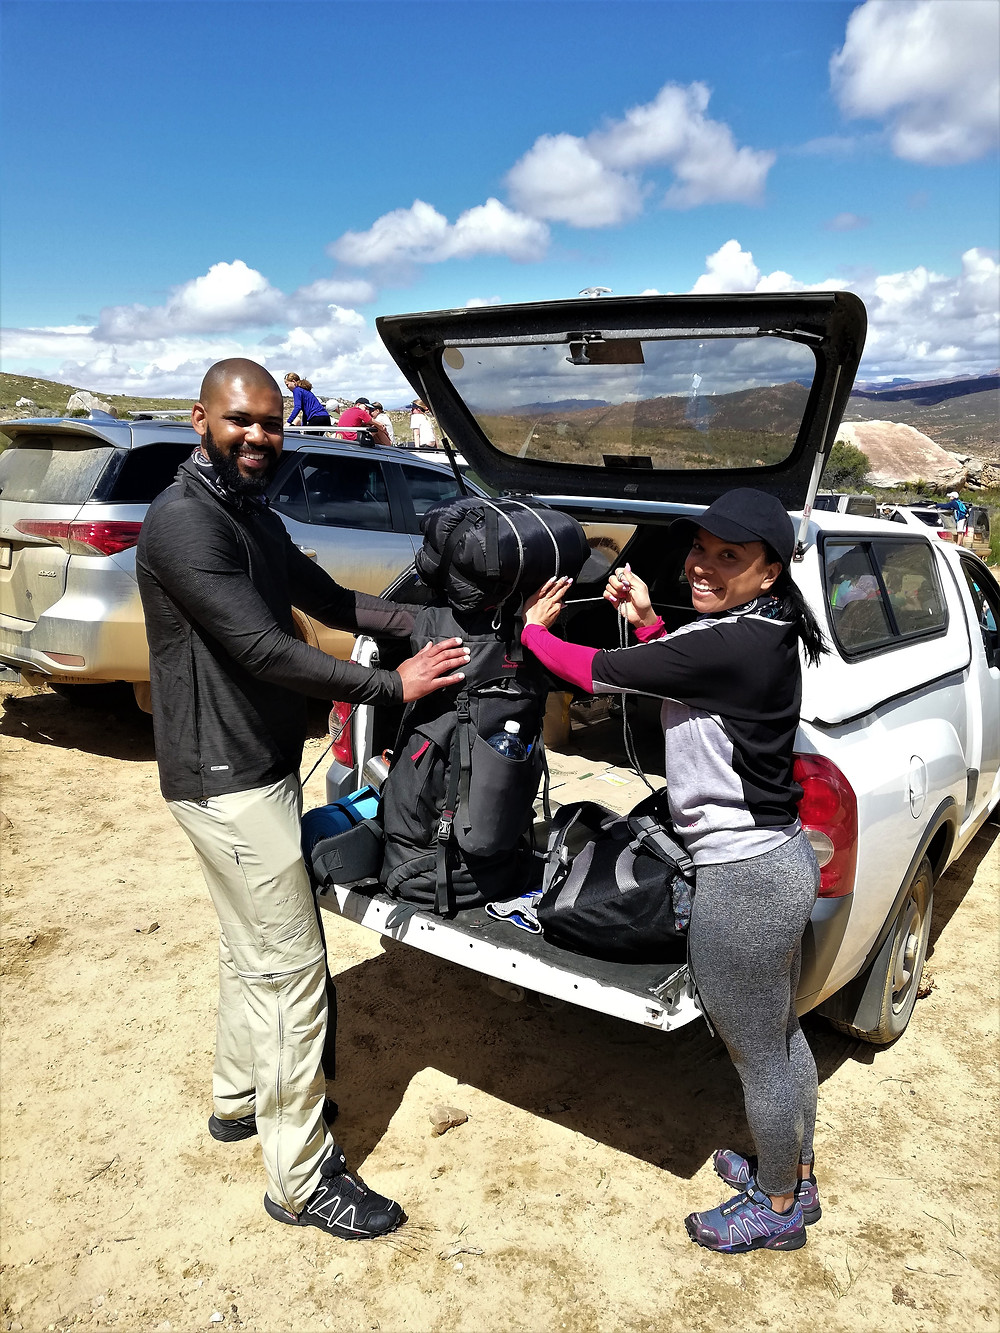 A man and a woman holding a backpack on the tailgate of a small utility vehicle